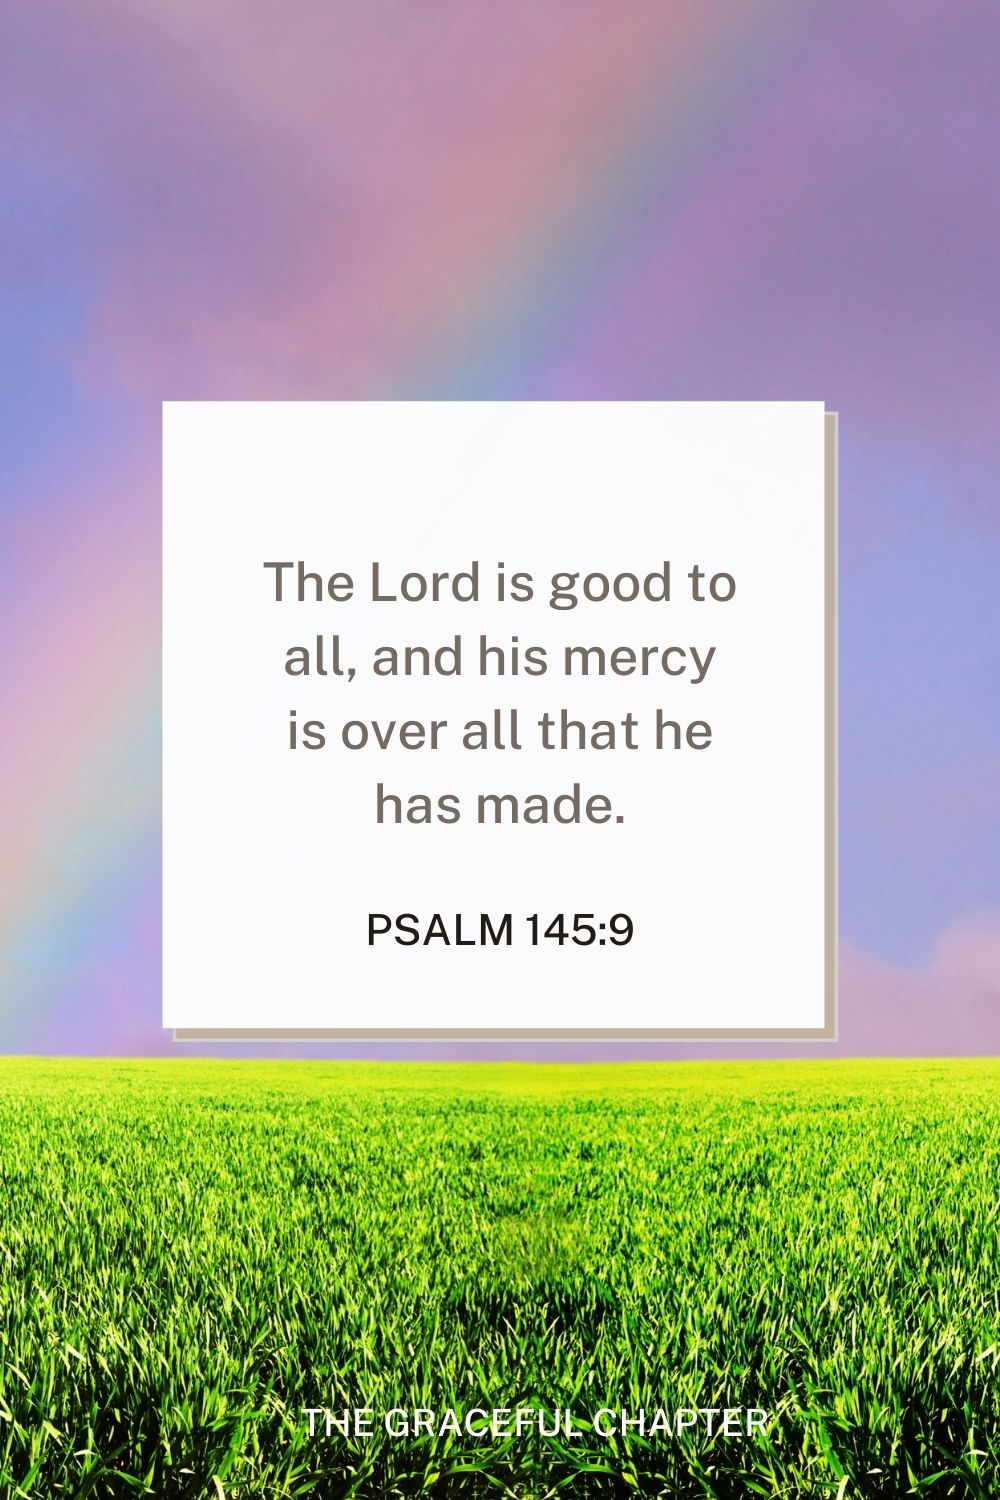 The Lord is good to all, and his mercy is over all that he has made. Psalm 145:9